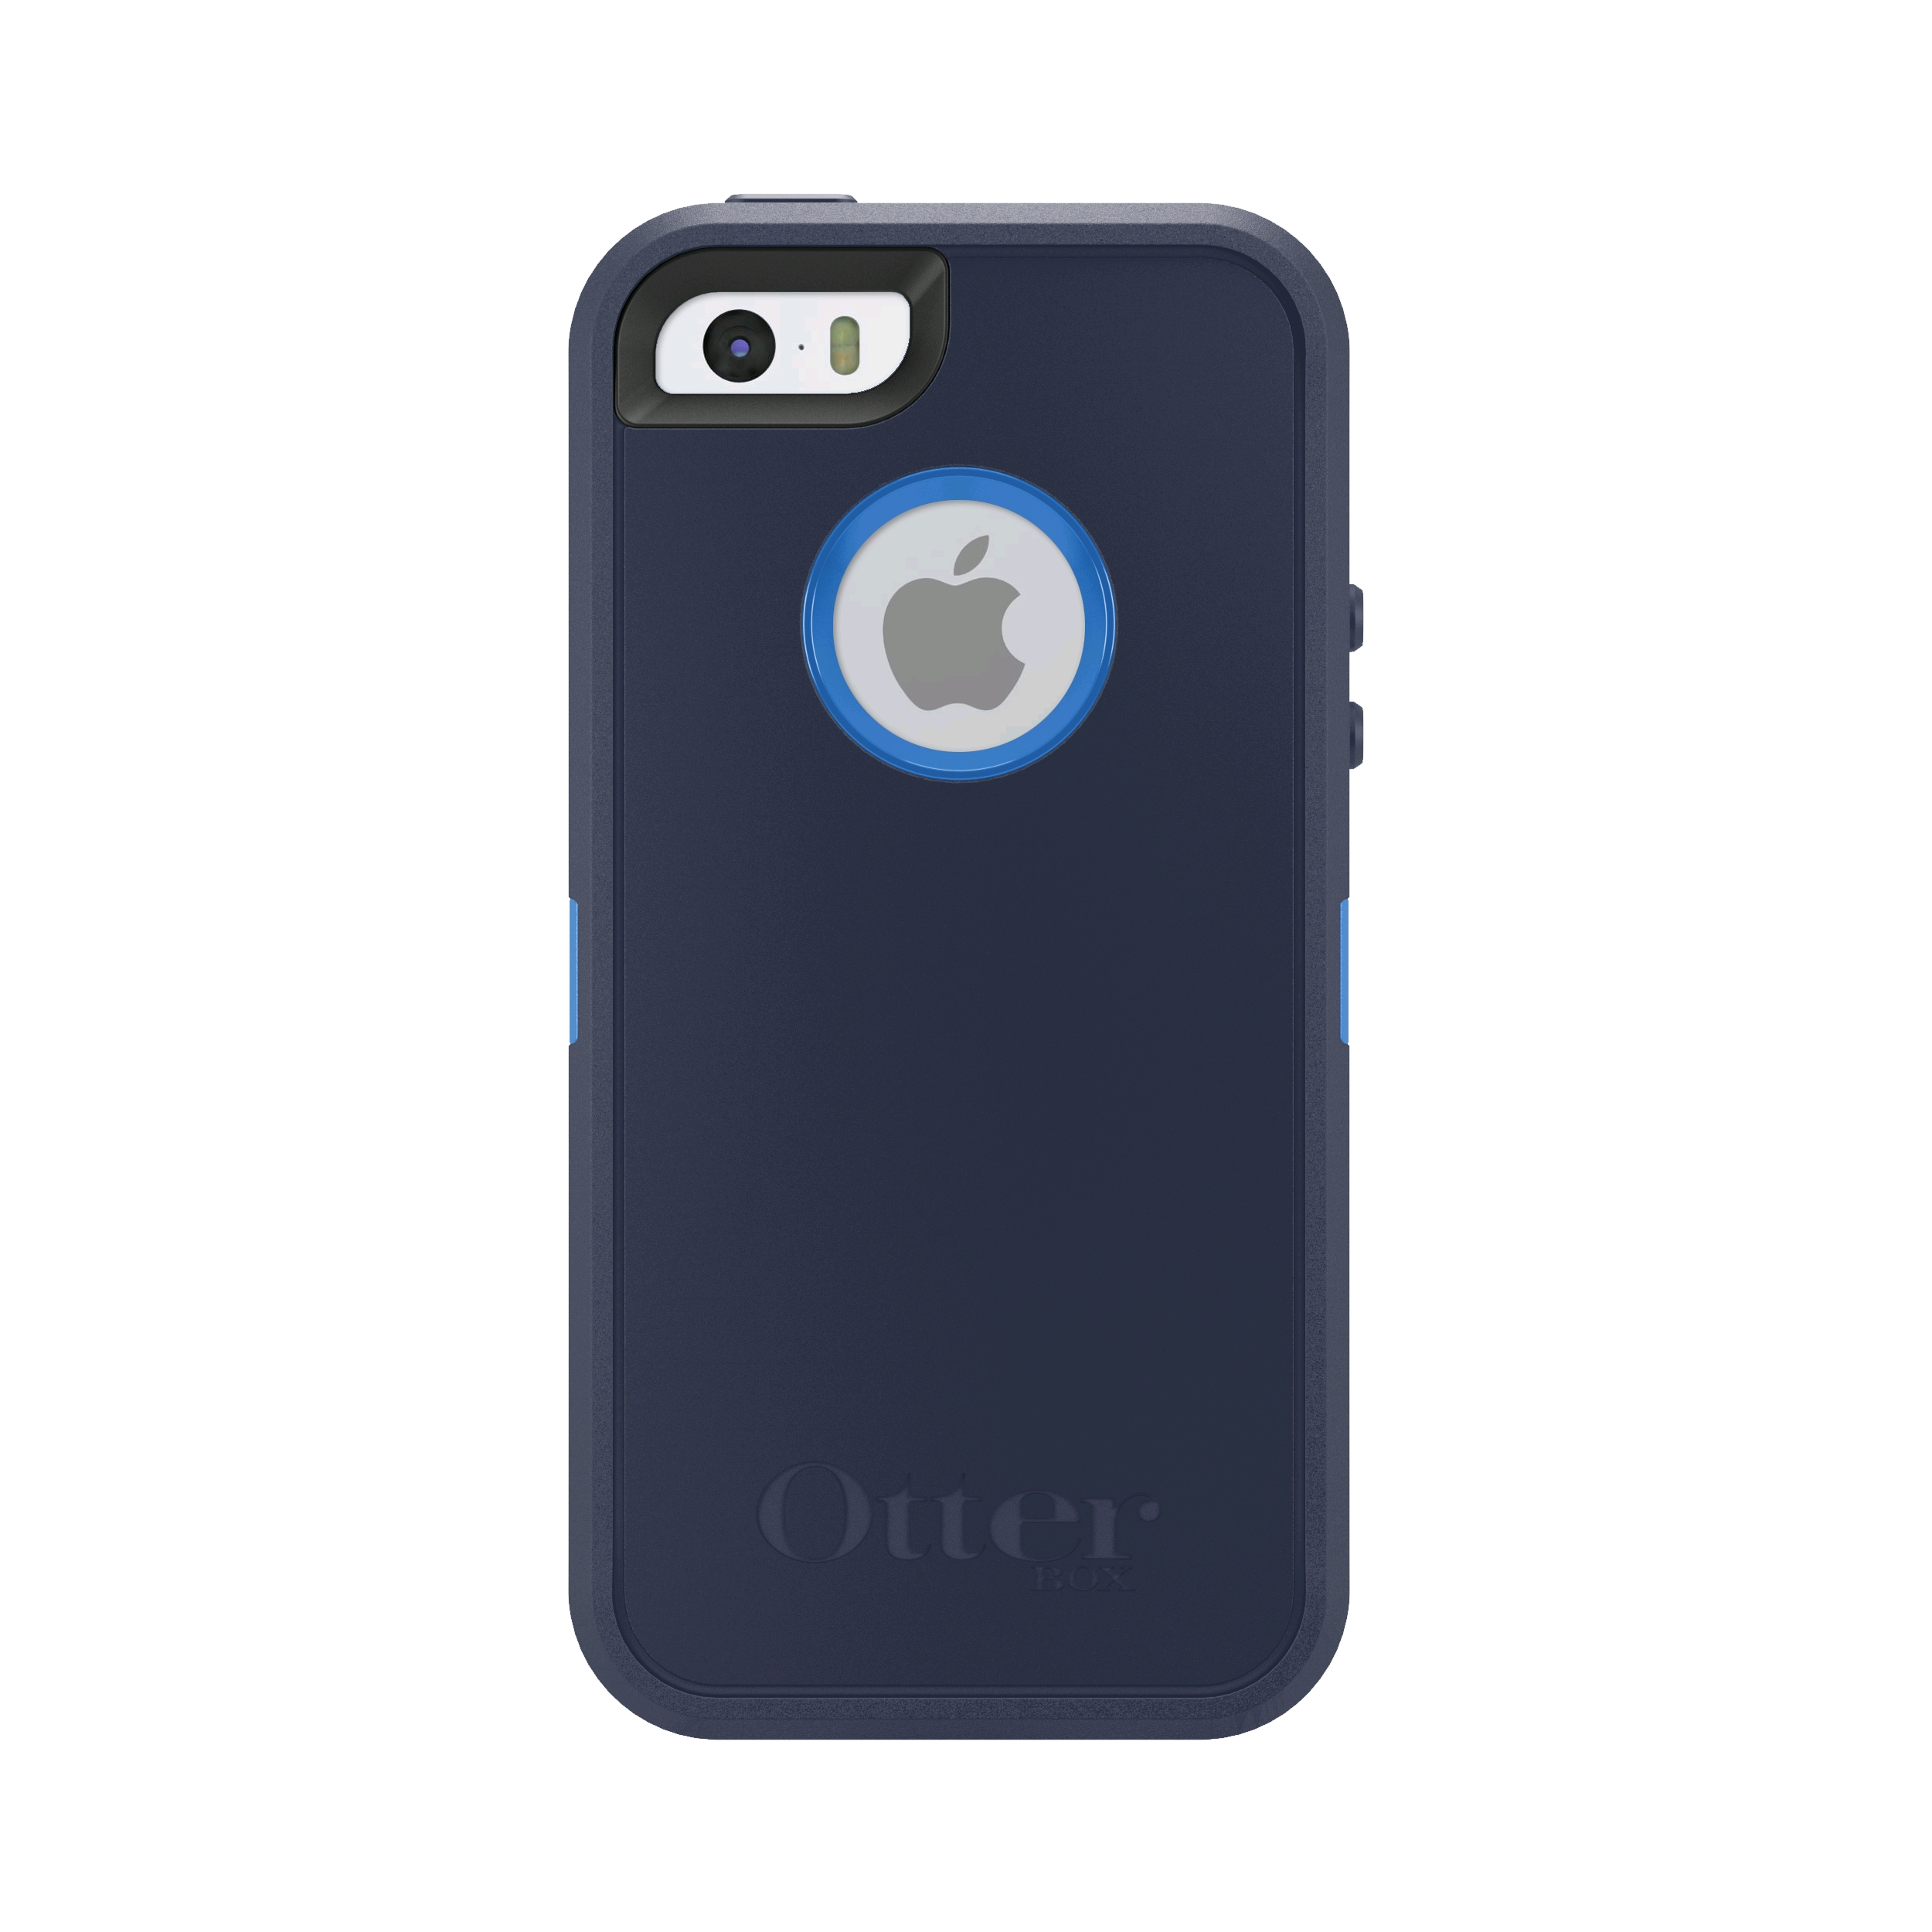 separation shoes 906c2 71c8b OtterBox Defender Case for iPhone 5s (Surf) - EXPANSYS Malaysia